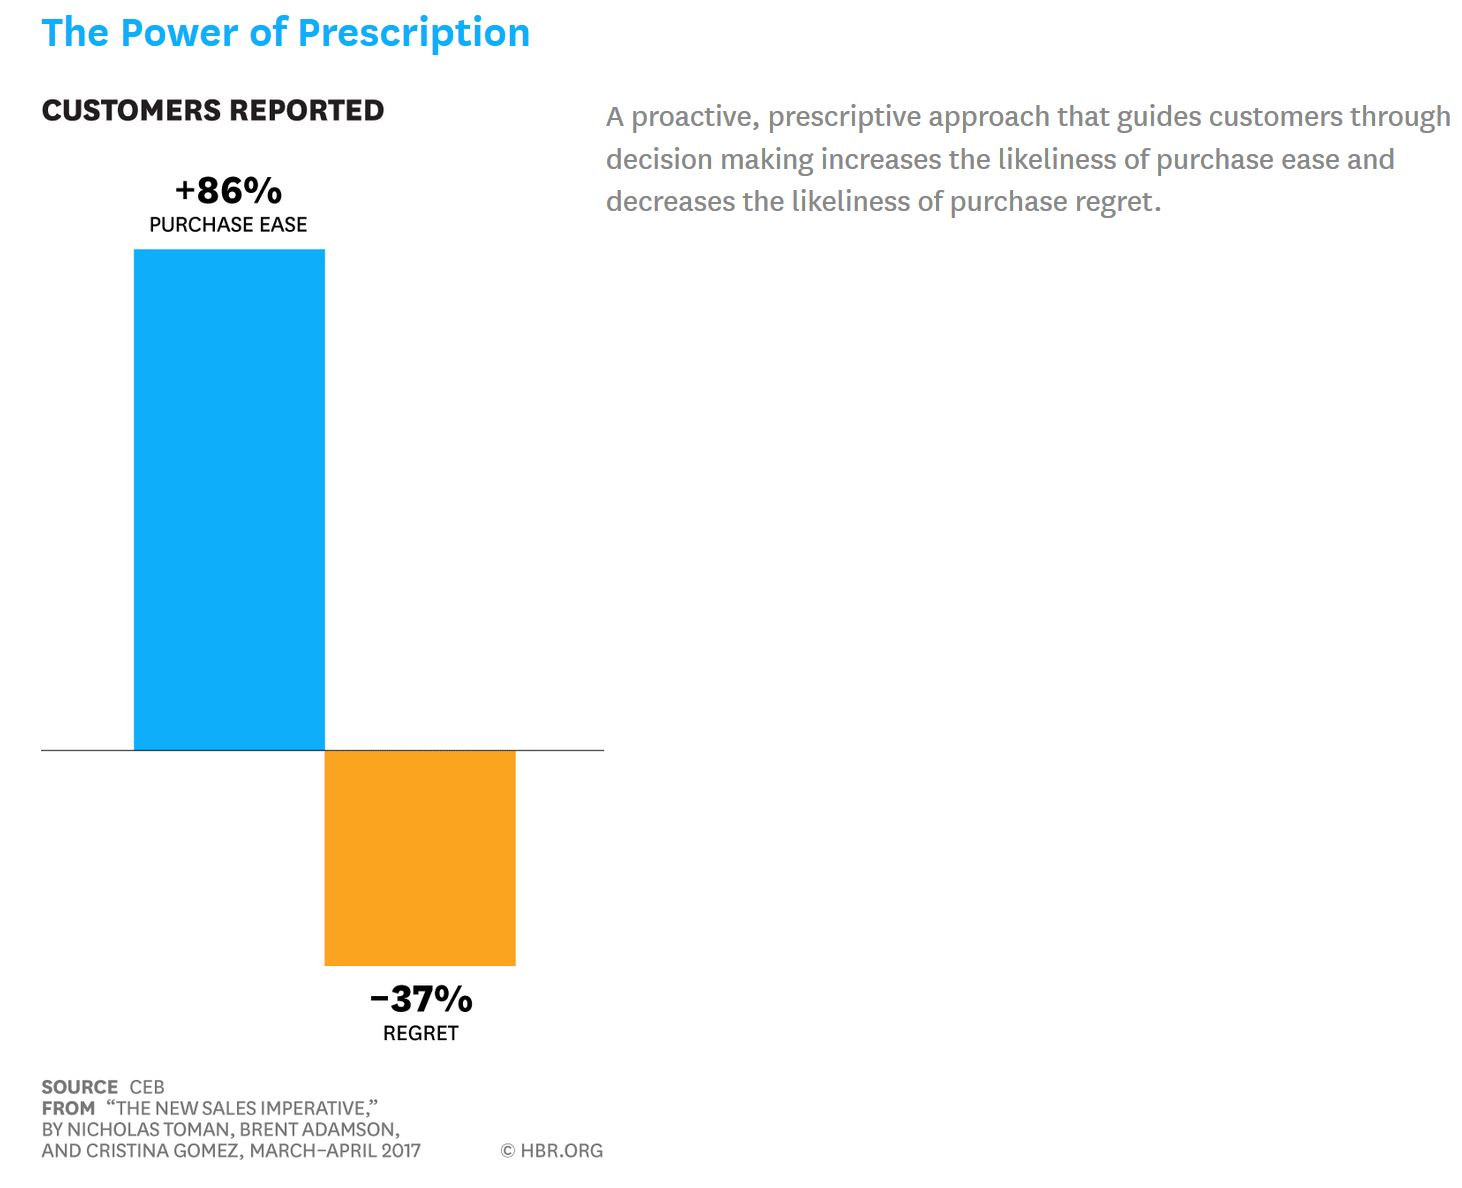 proactively guiding customers through decision making increases purchase ease in buyers